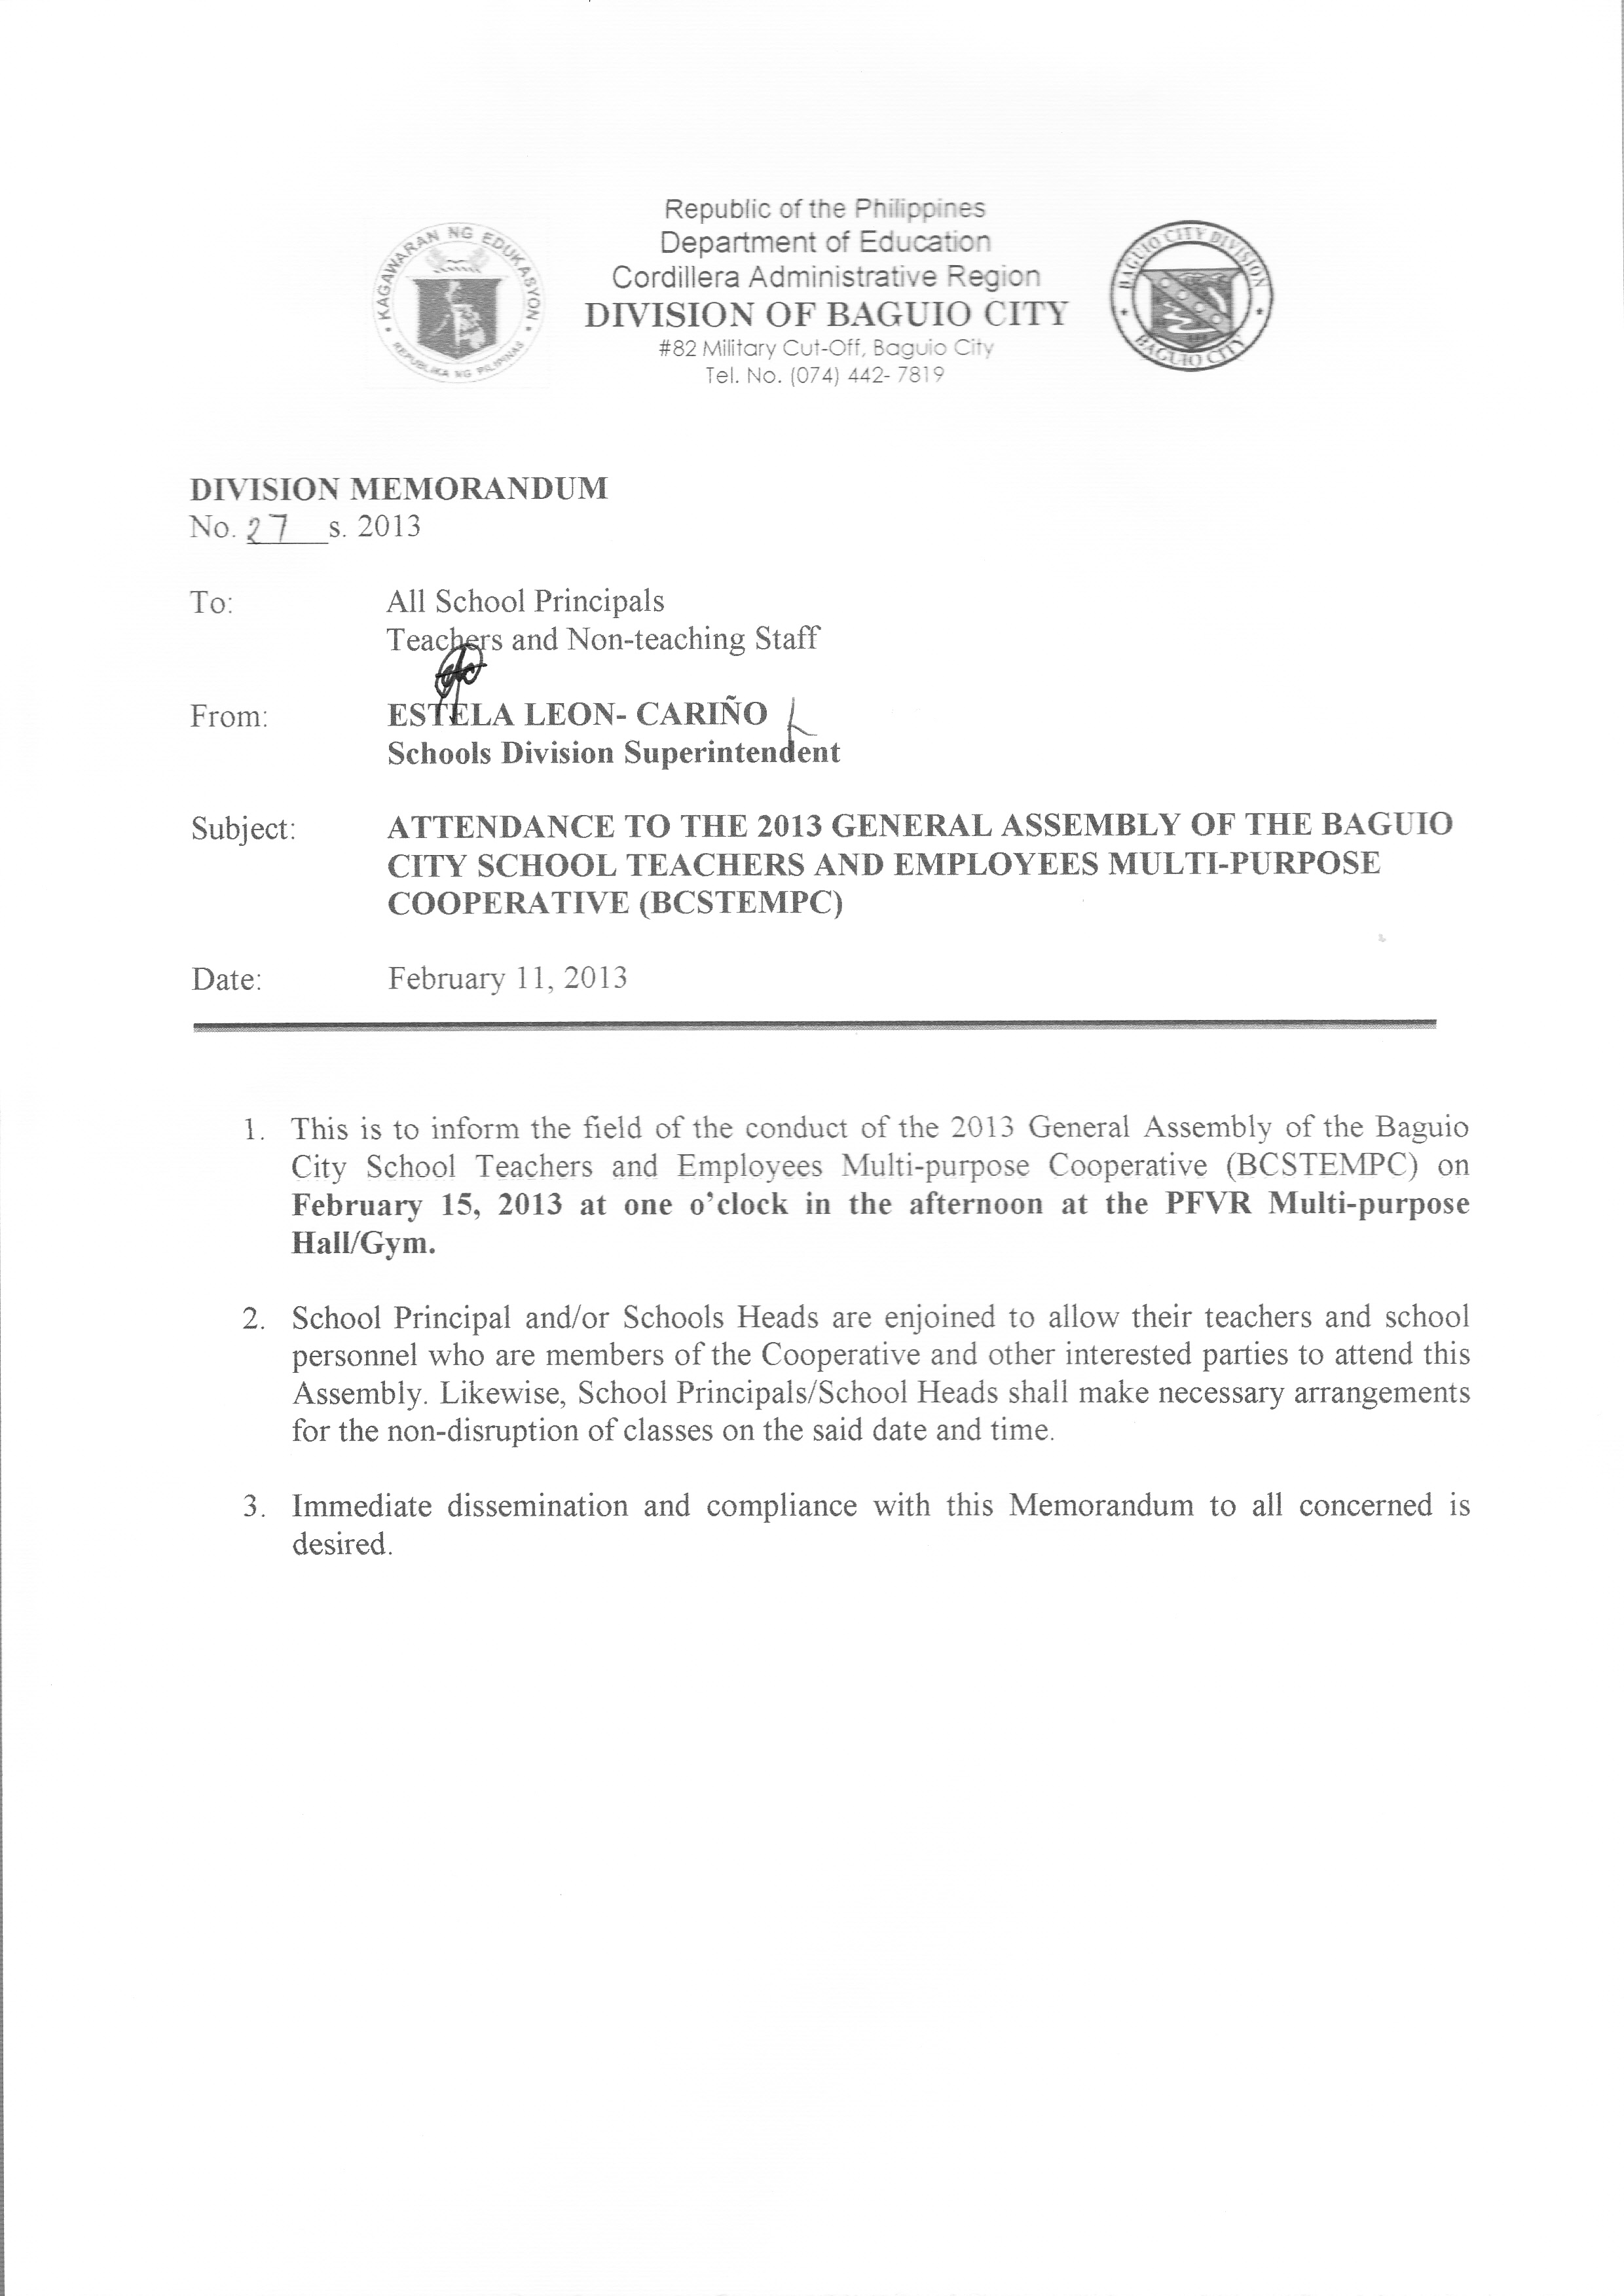 ATTENDANCE TO THE 2013 GENERAL ASSEMBLY OF THE BAGUIO CITY ...